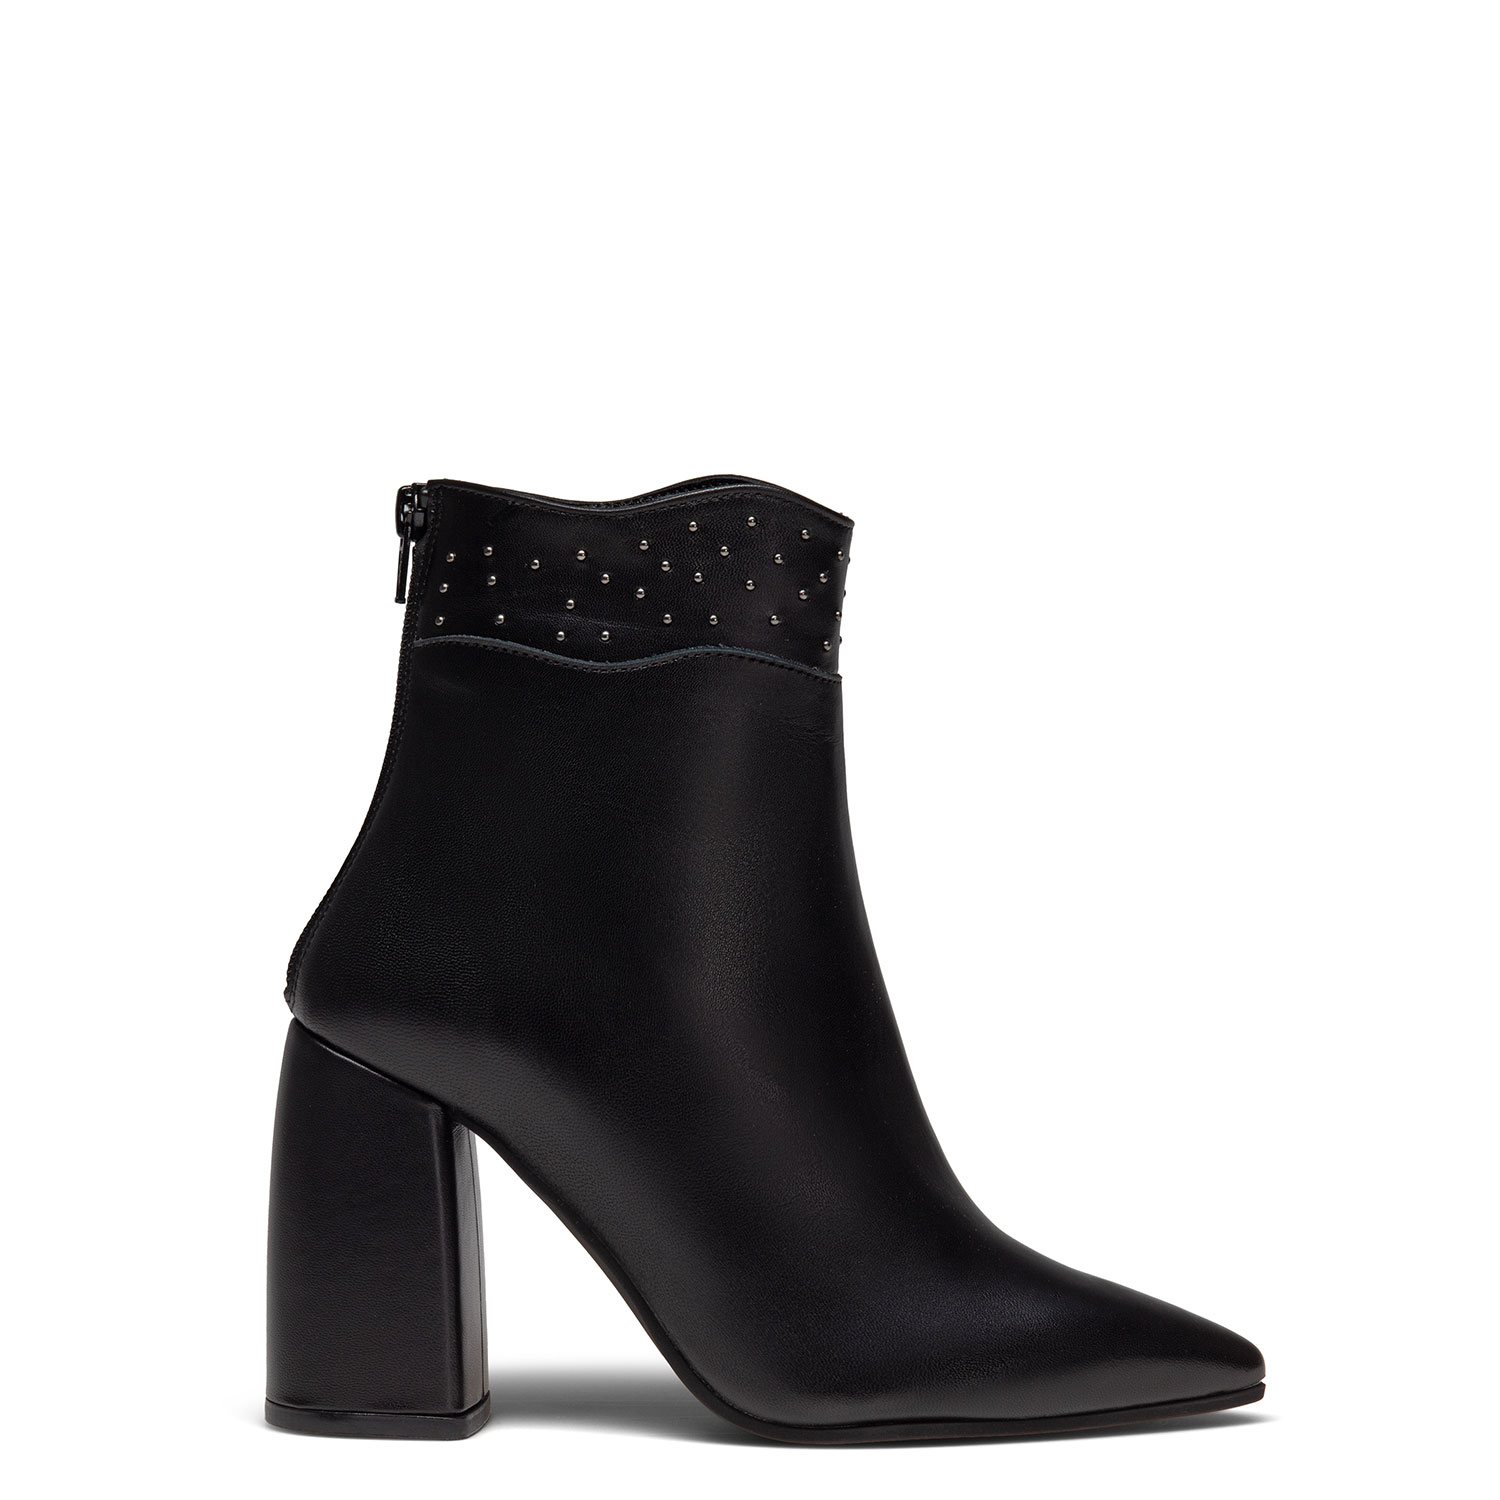 Women's ankle boots PAZOLINI GC-X0490-1